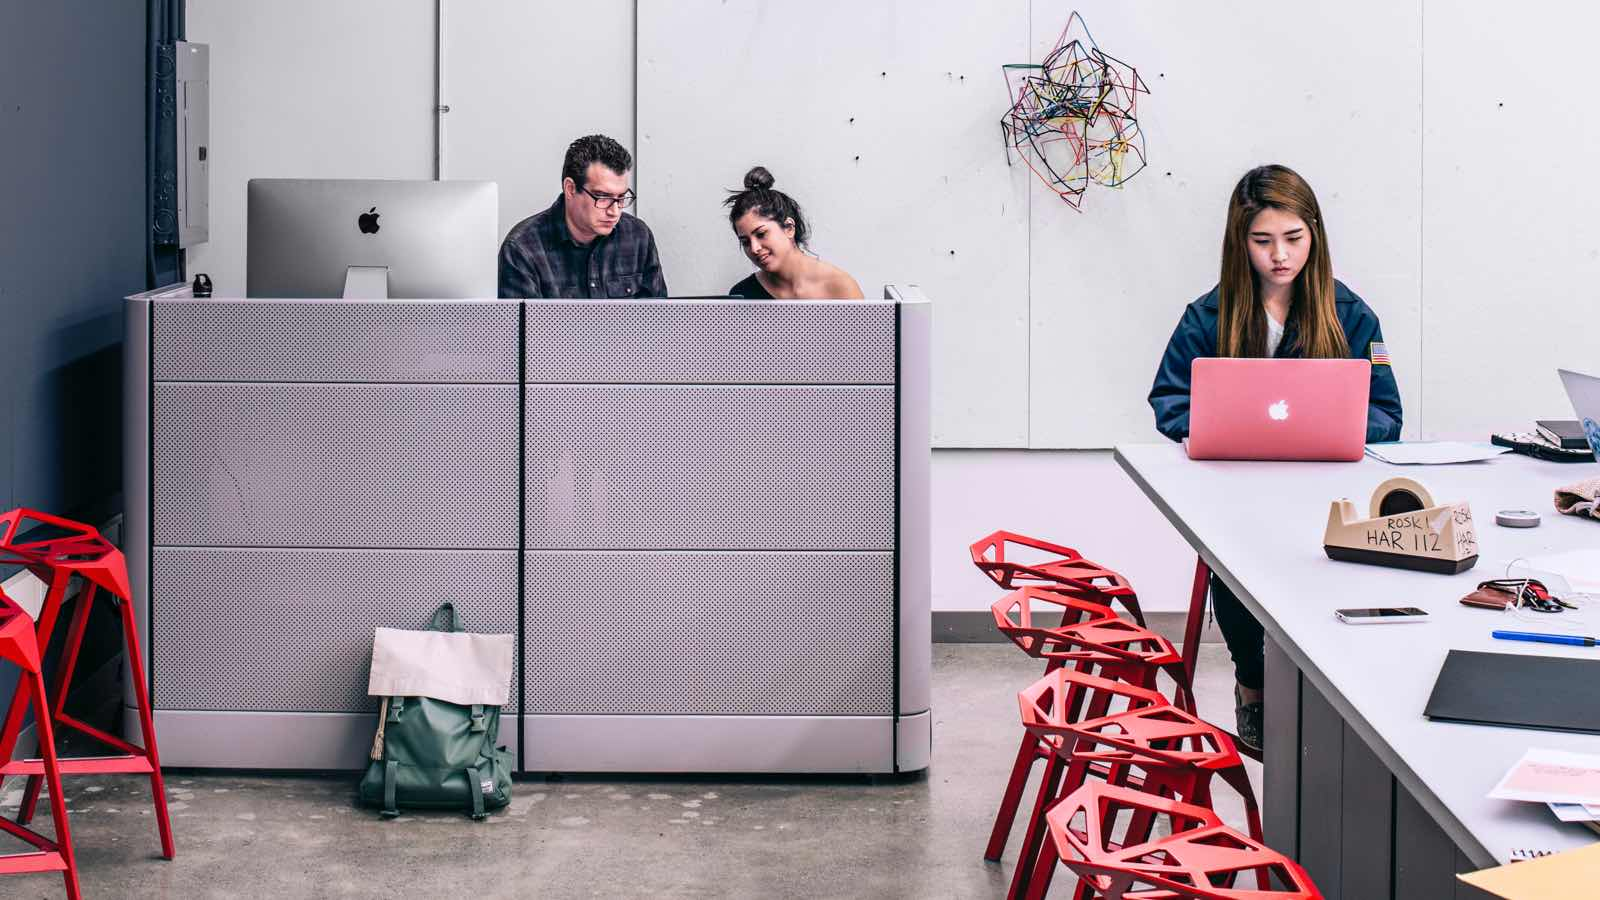 A man and woman sit behind a tall gray workstation divider with a large Apple desktop display. A female student sits nearby atop a red Magis Stool_One at a tall desk with a laptop and various office supplies.